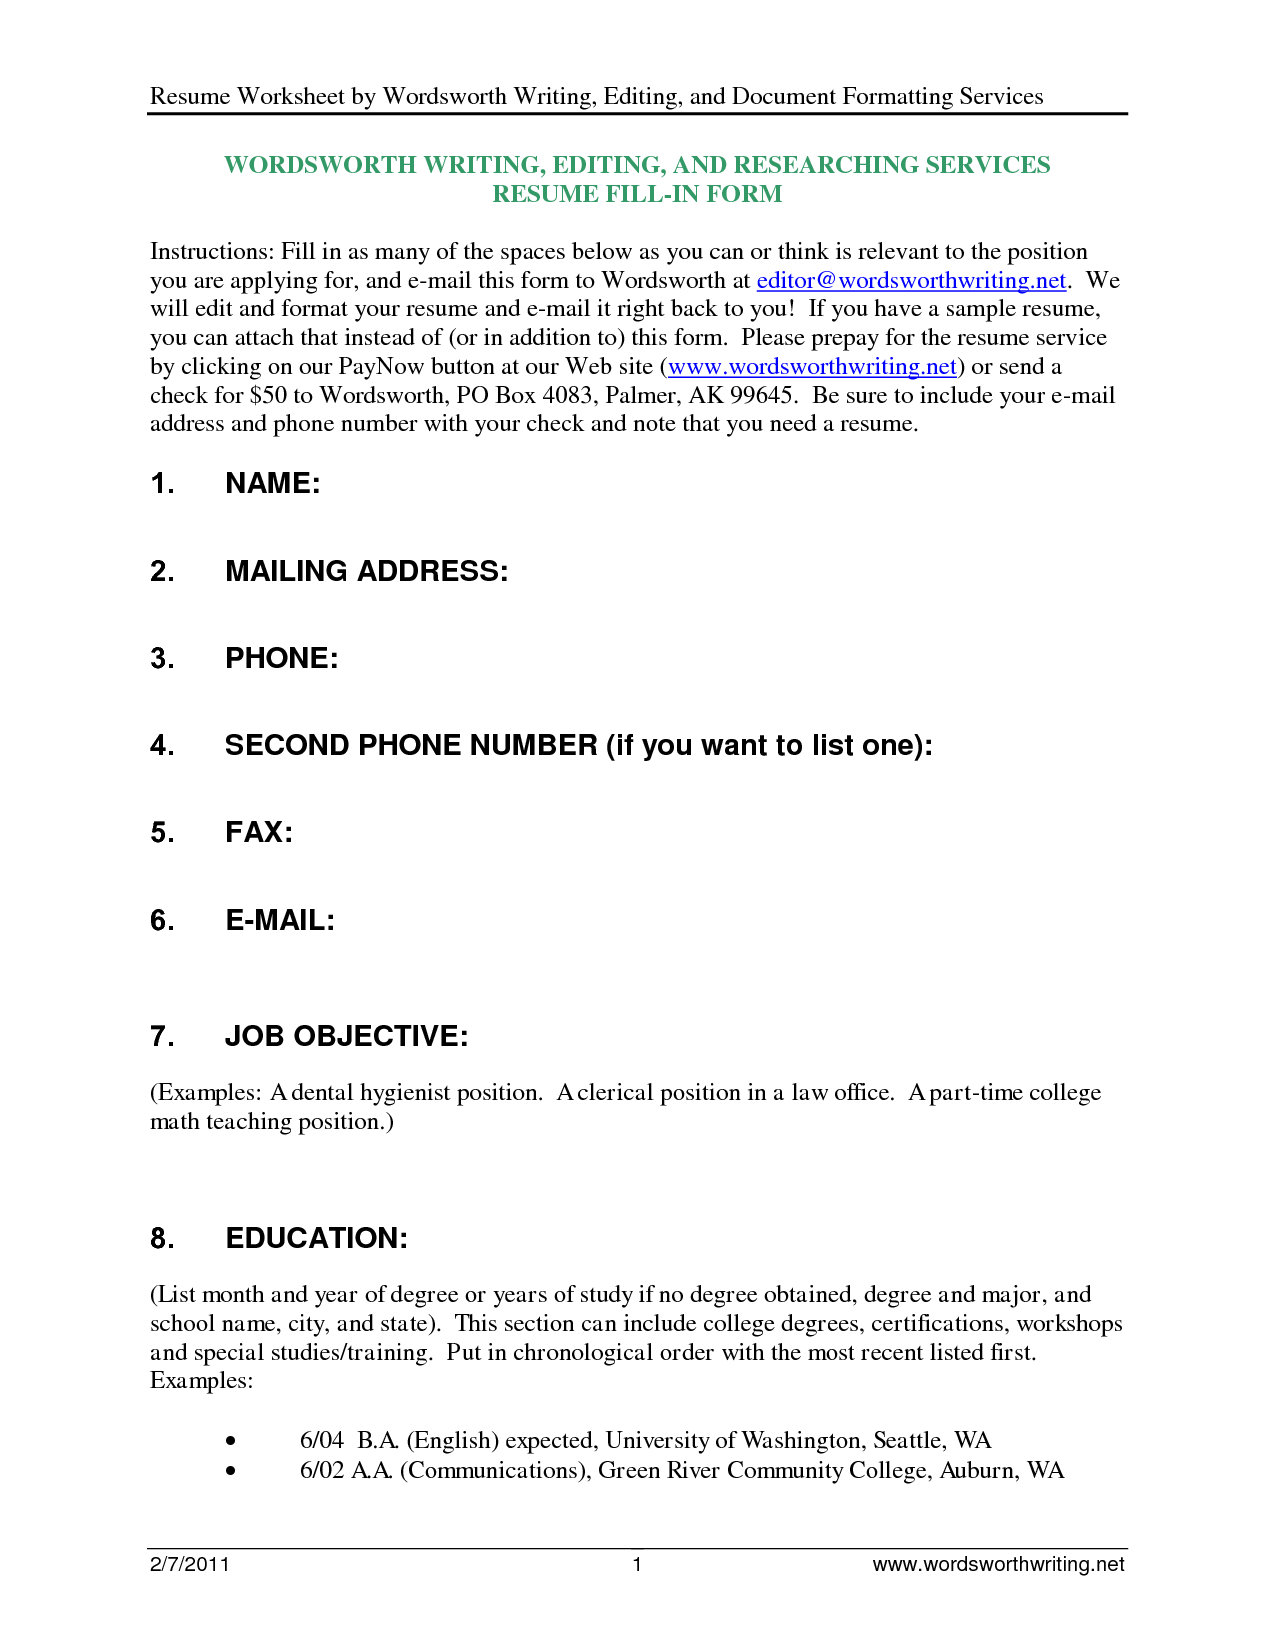 free resume templates that you can fill in